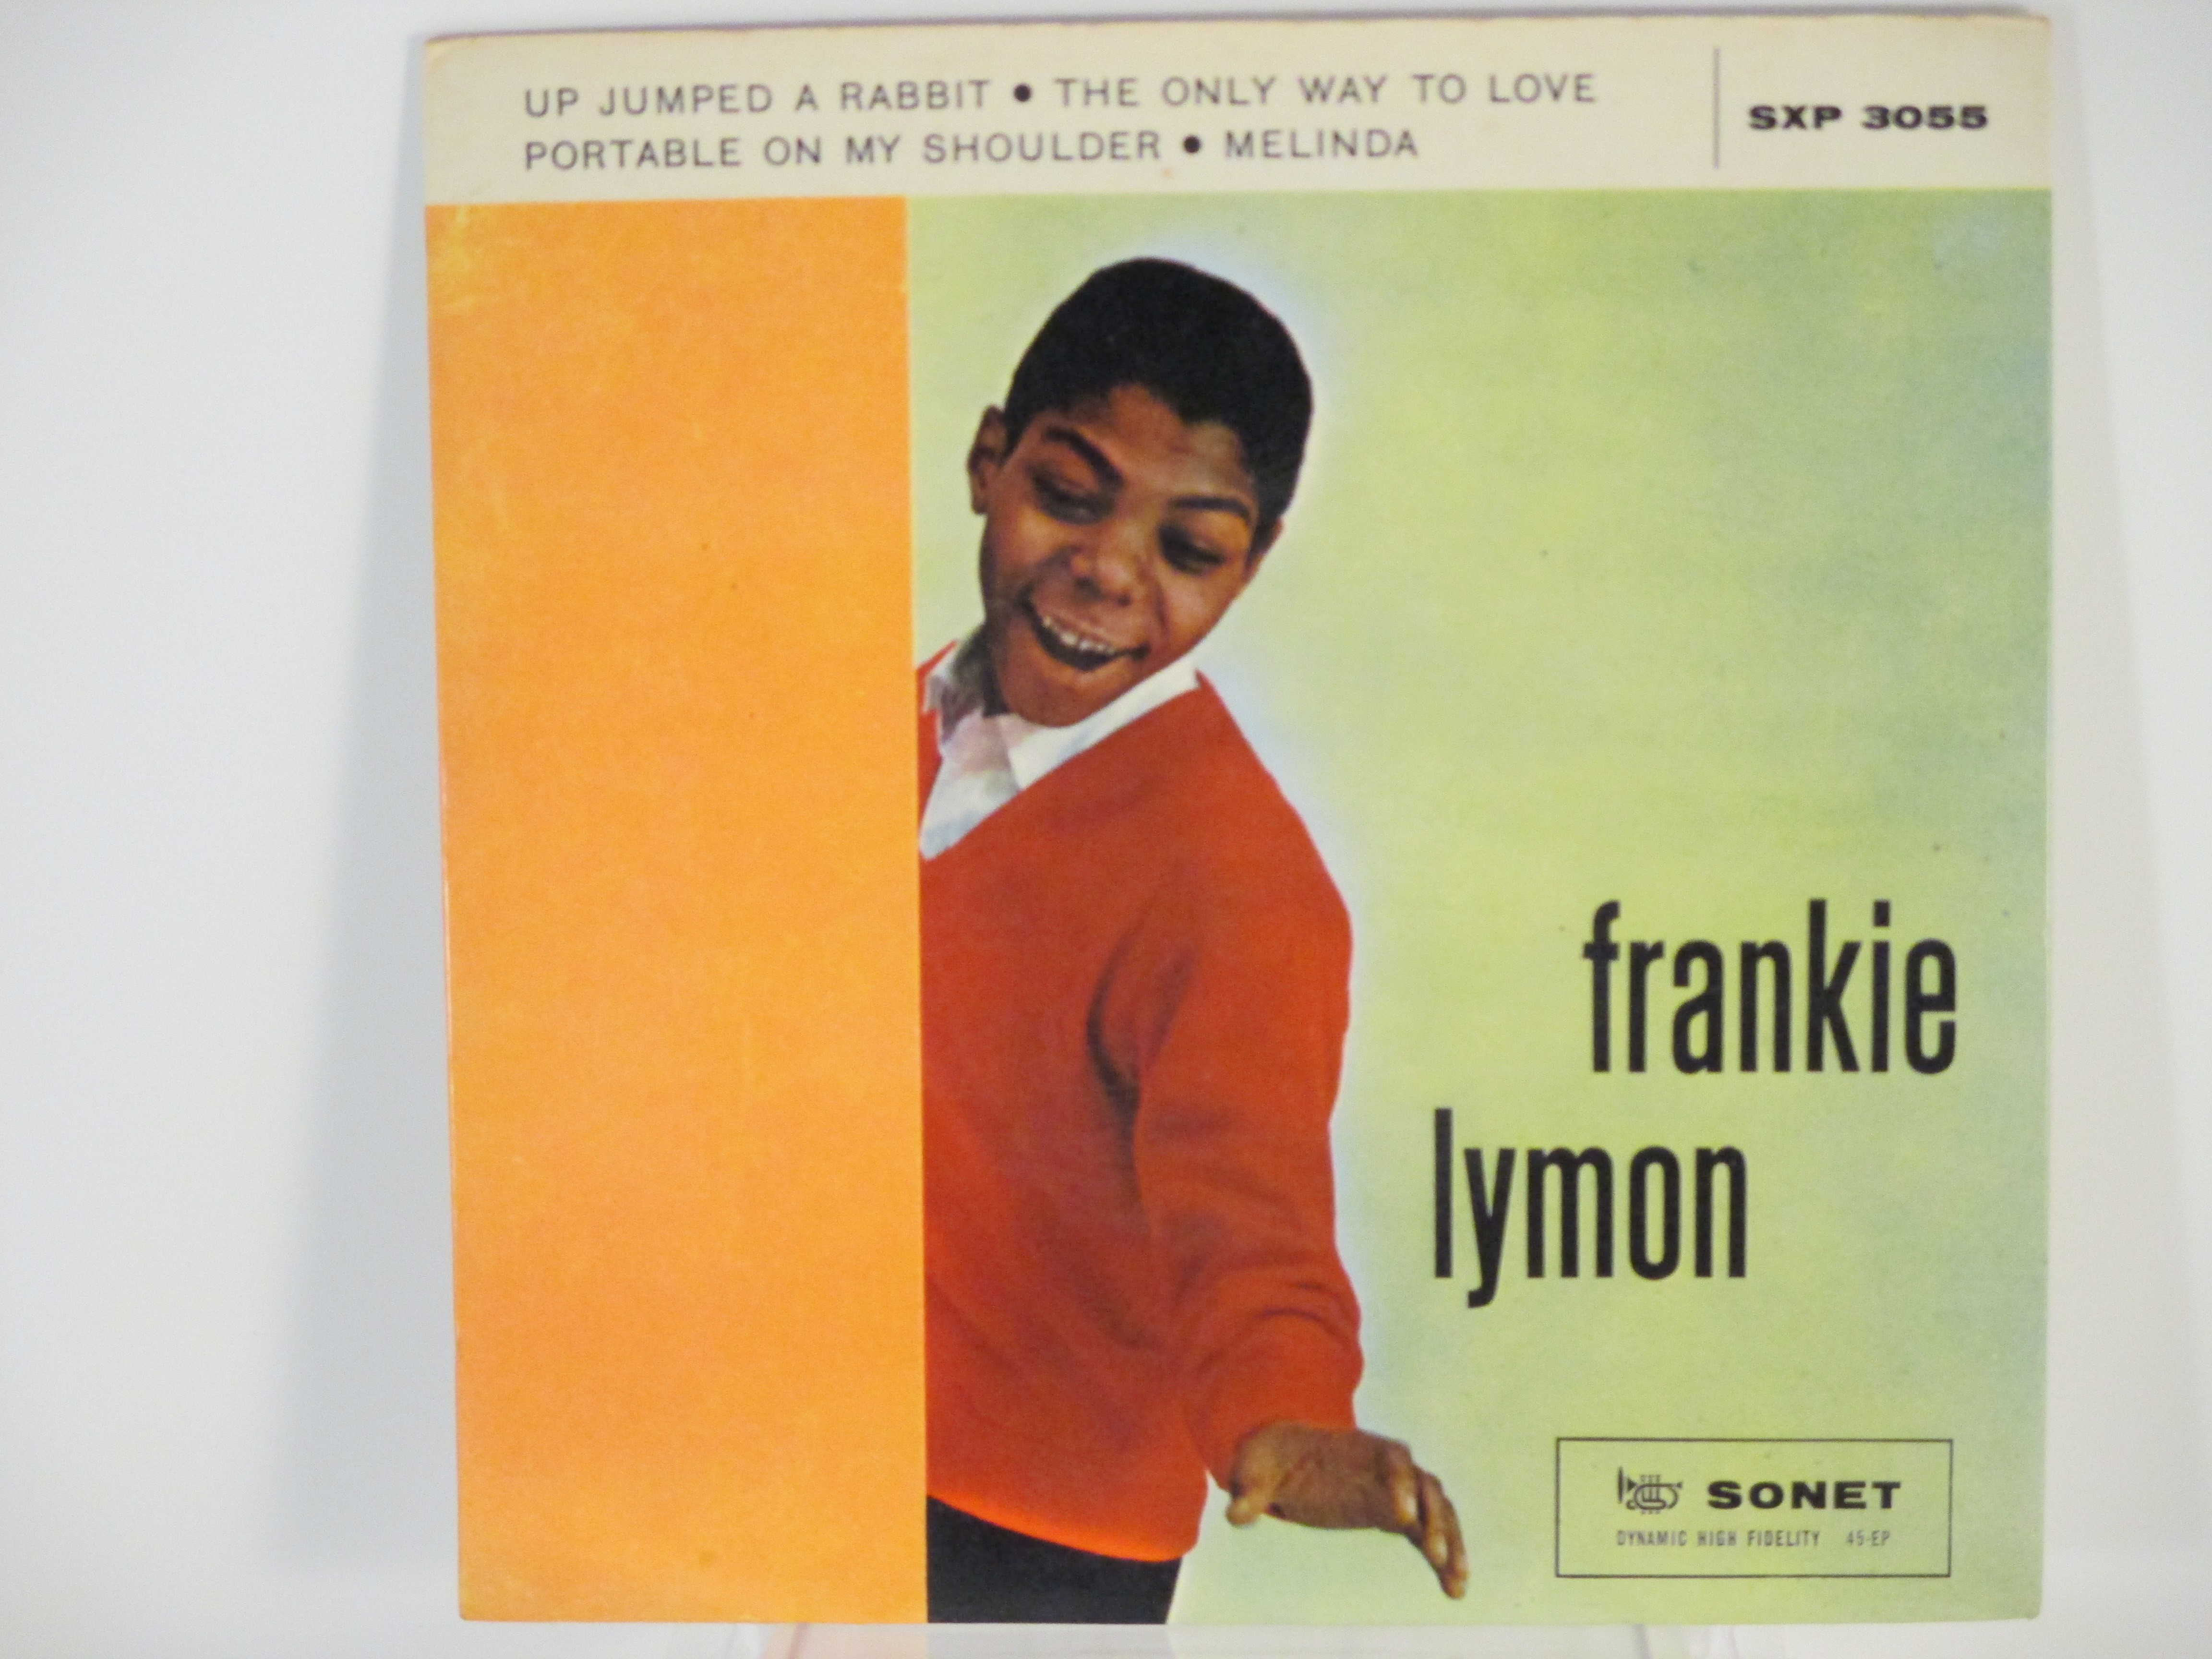 FRANKIE LYMON : (EP) Up jumped a rabbit / The only way to love / Portable on my shoulder / Melinda